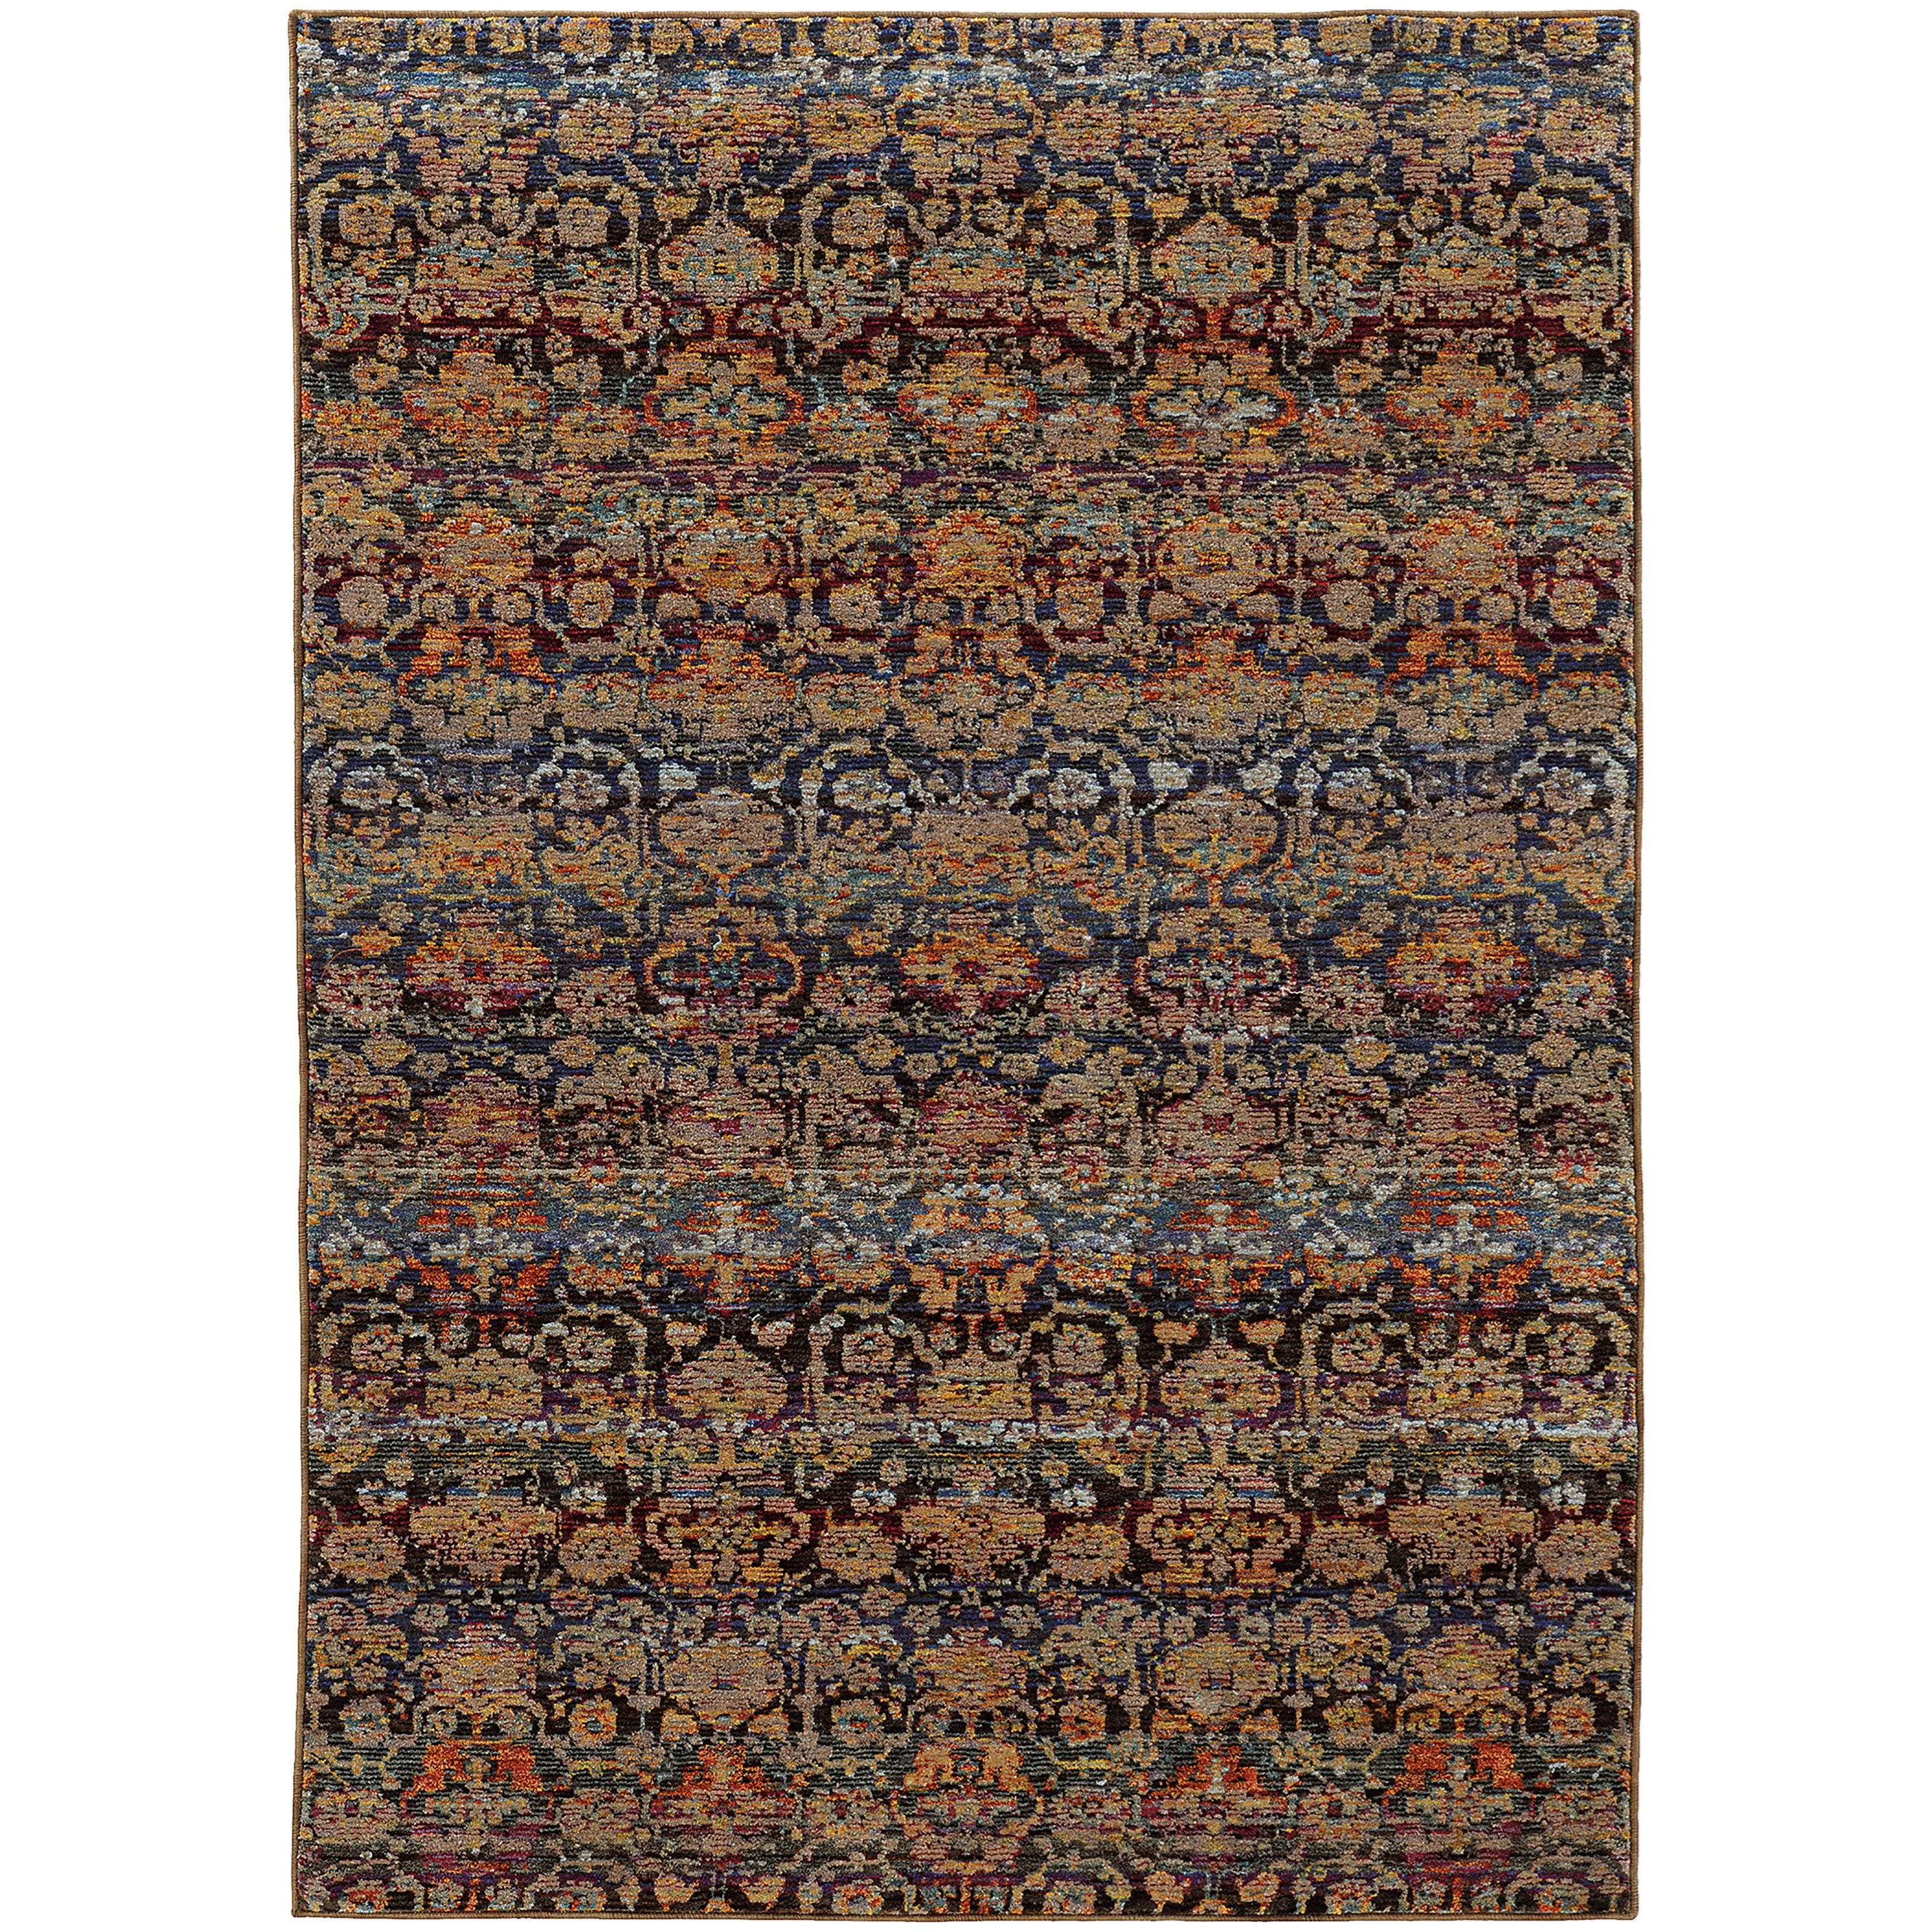 "Andorra 8' 6"" X 11' 7"" Casual Multi/ Blue Rectangle  by Oriental Weavers at Steger's Furniture"